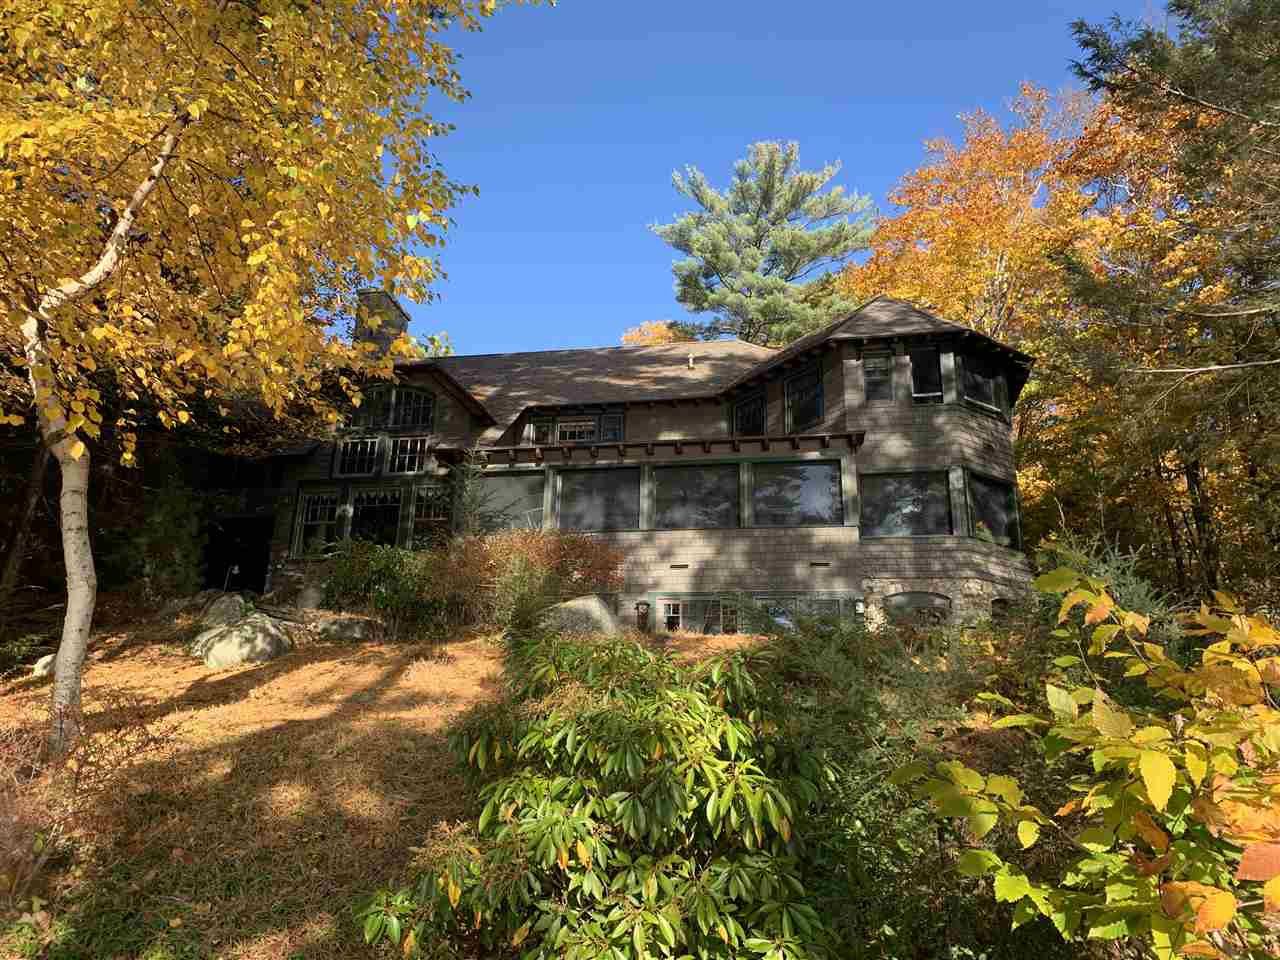 MLS 4736610: 80 Broadside Road, Wolfeboro NH